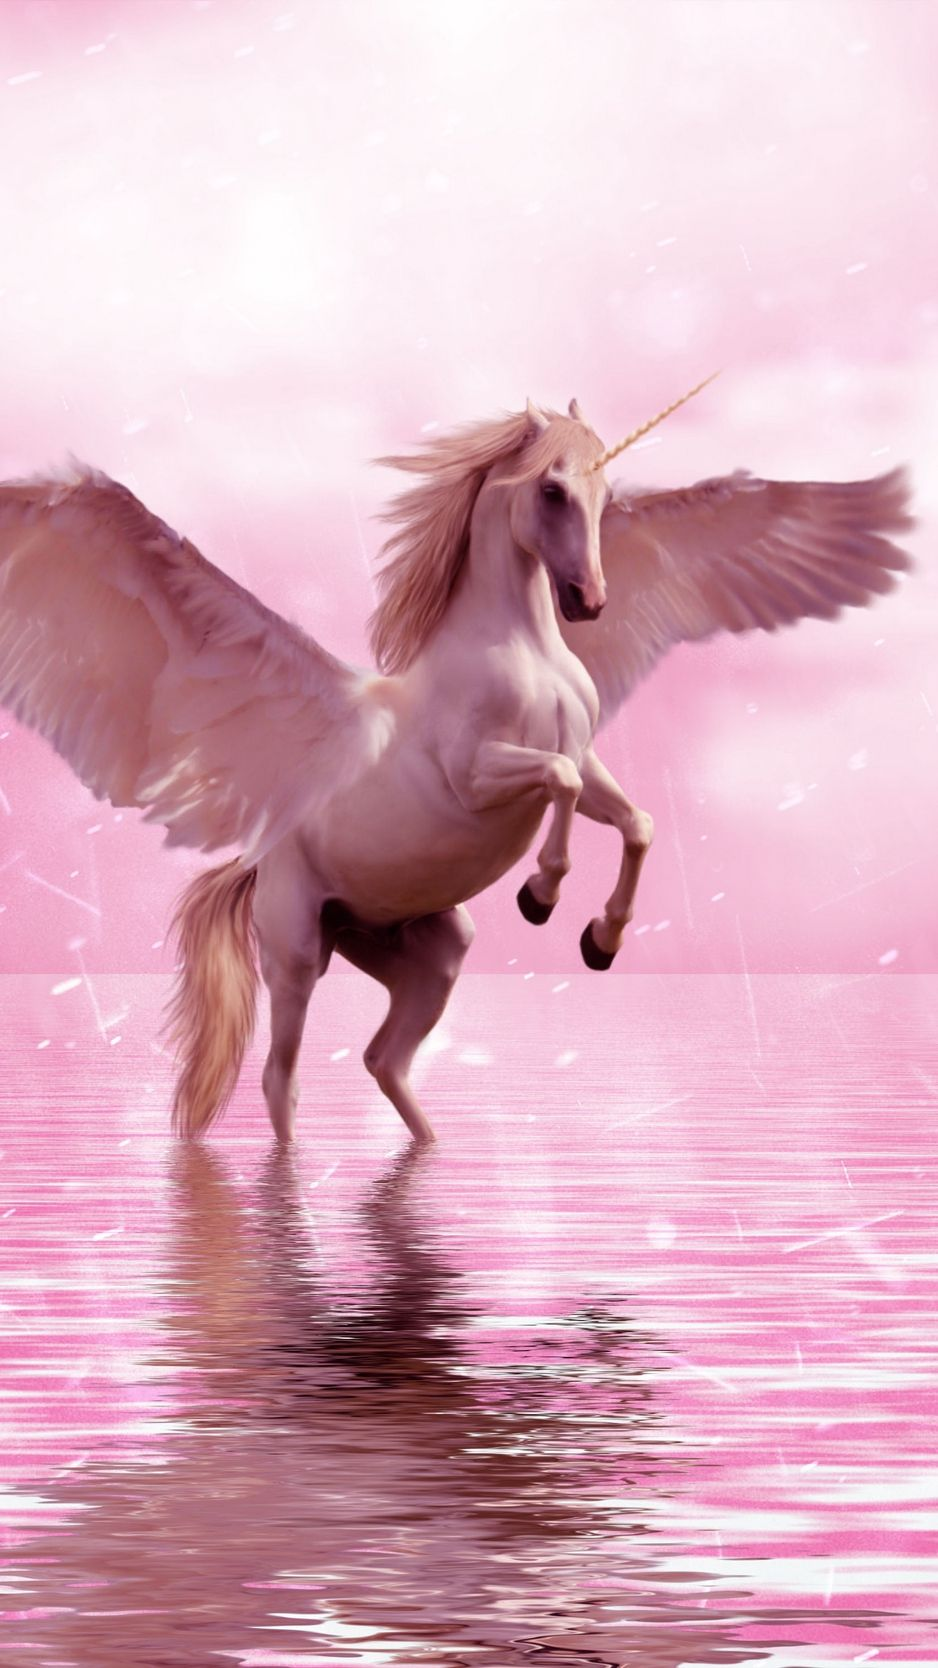 Download Samsung Galaxy S10 Wallpapers Qhd Resolution Backgrounds Cool Horse Wallpaper Horses Winged Horse